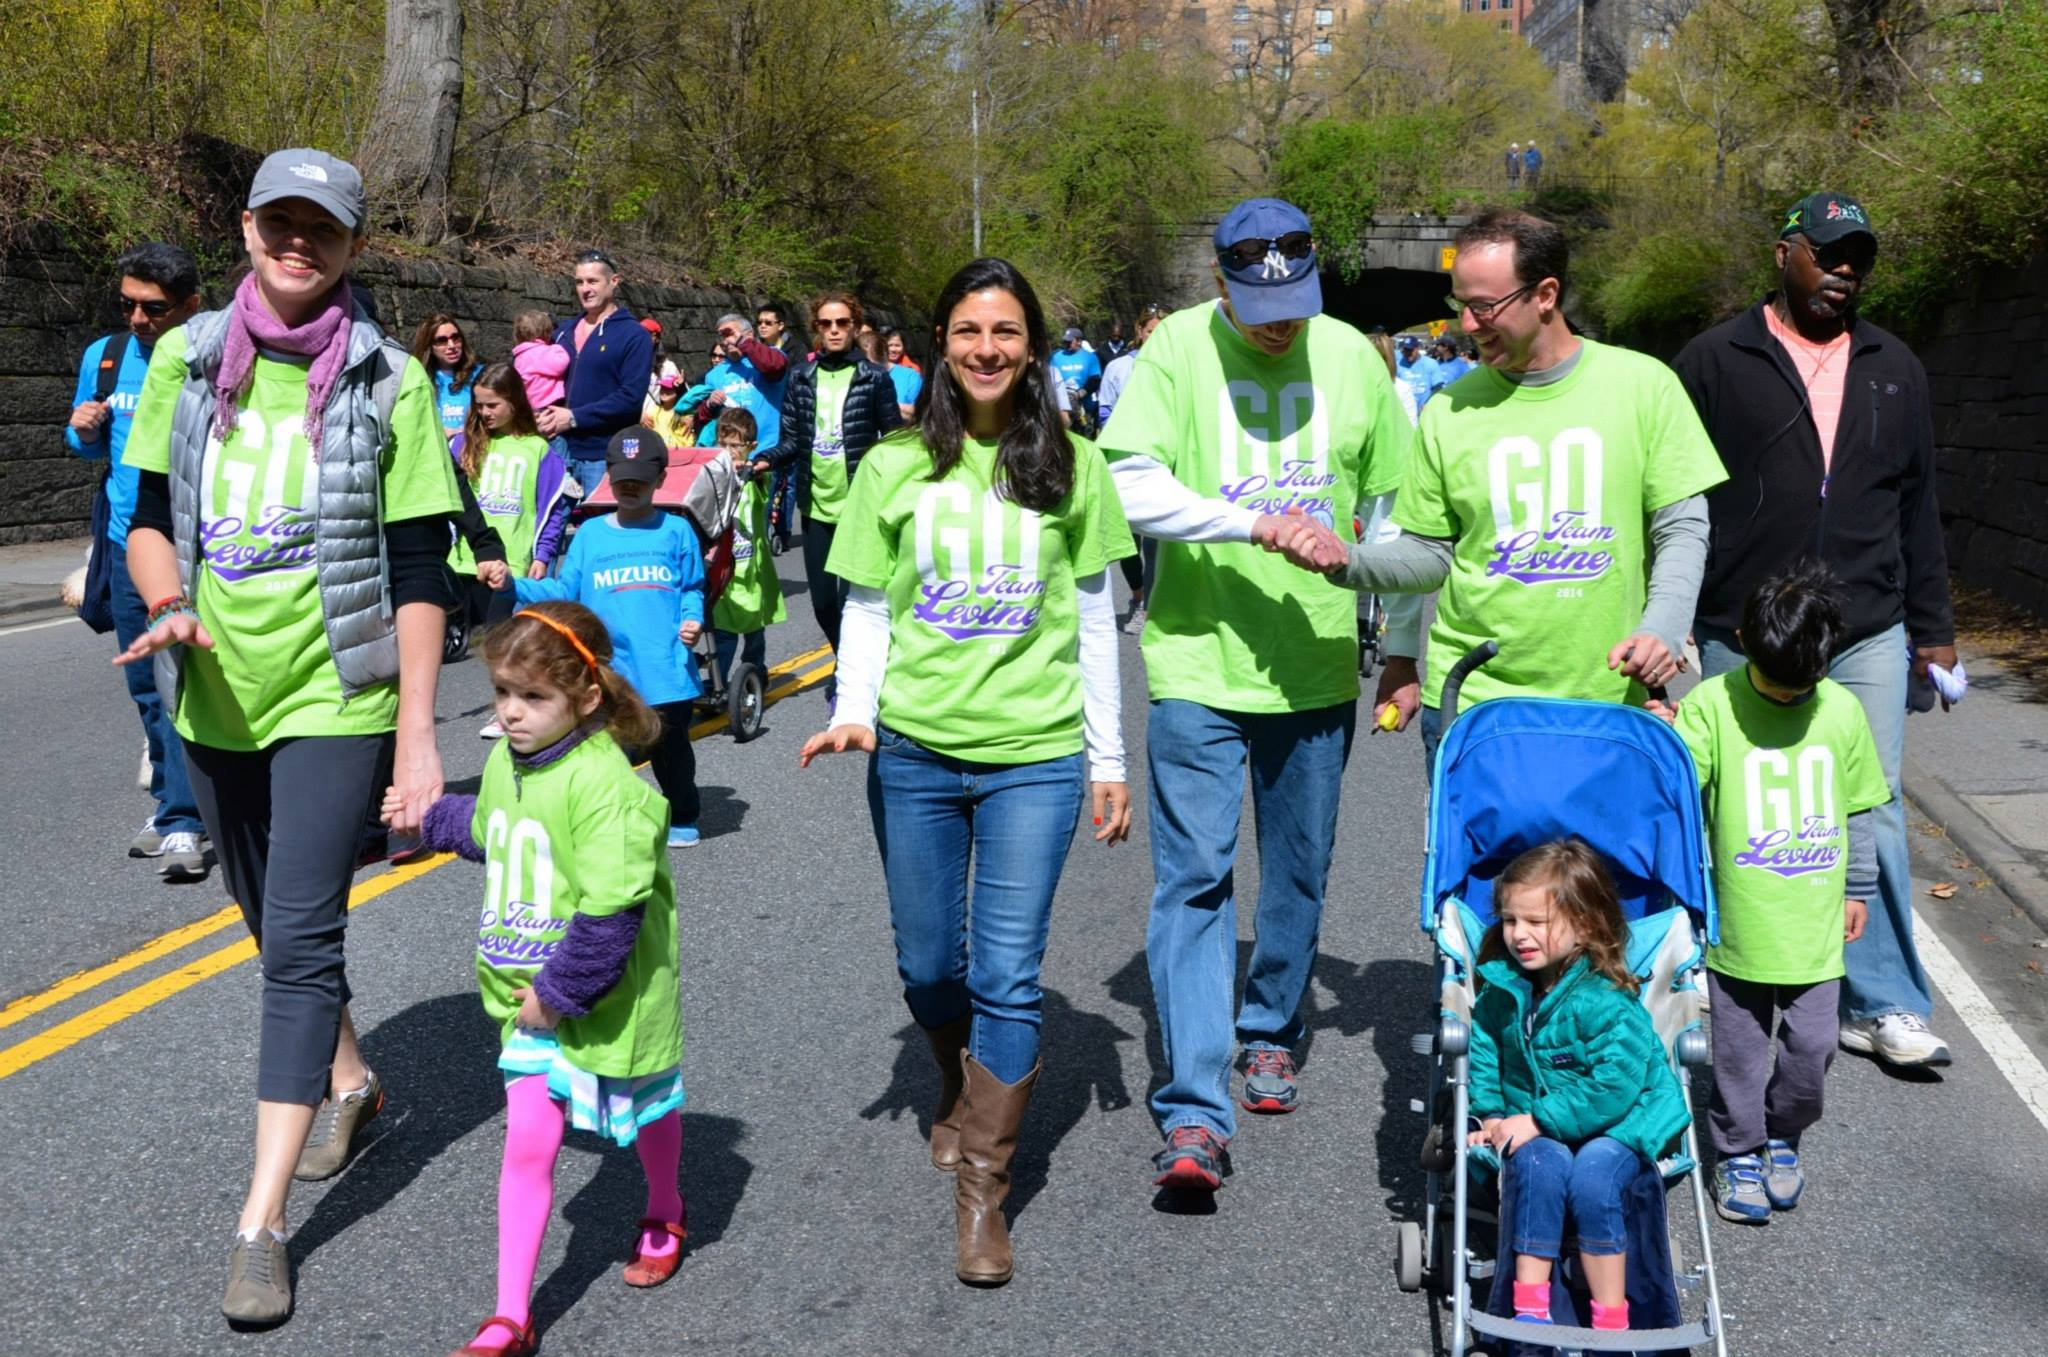 godina--goldsteinrosenthal-families-at-the-2015-march-for-babies-walk_16710135197_o.jpg